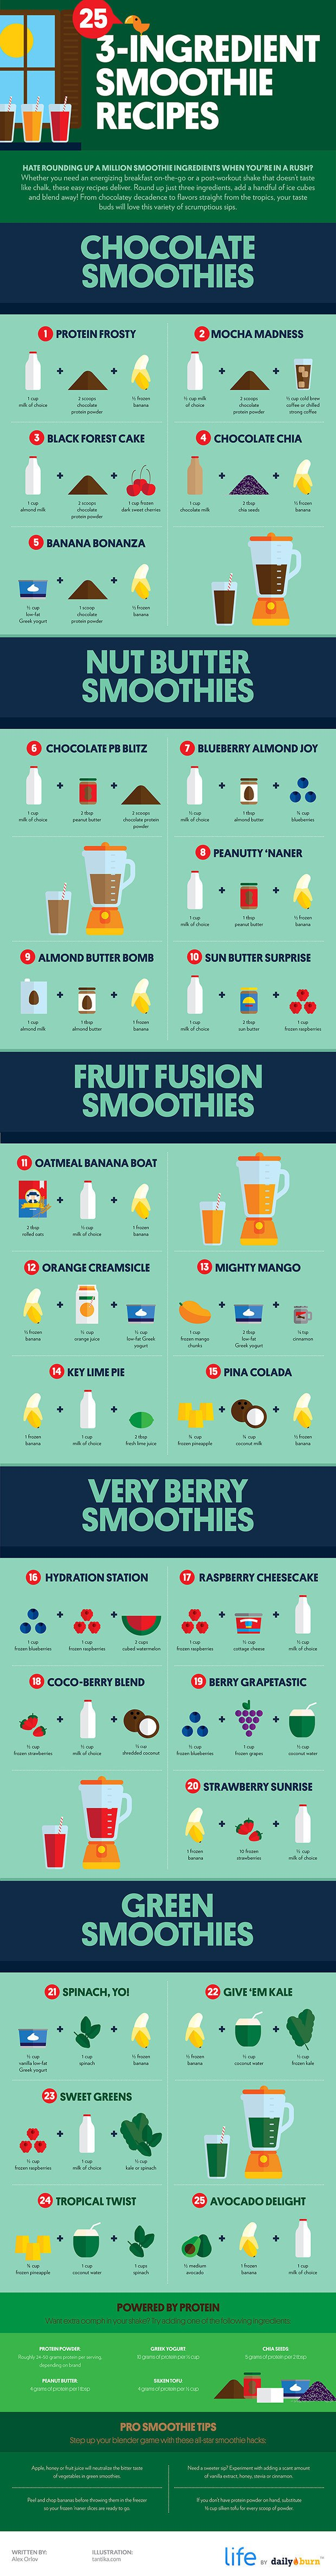 smoothie combination guide